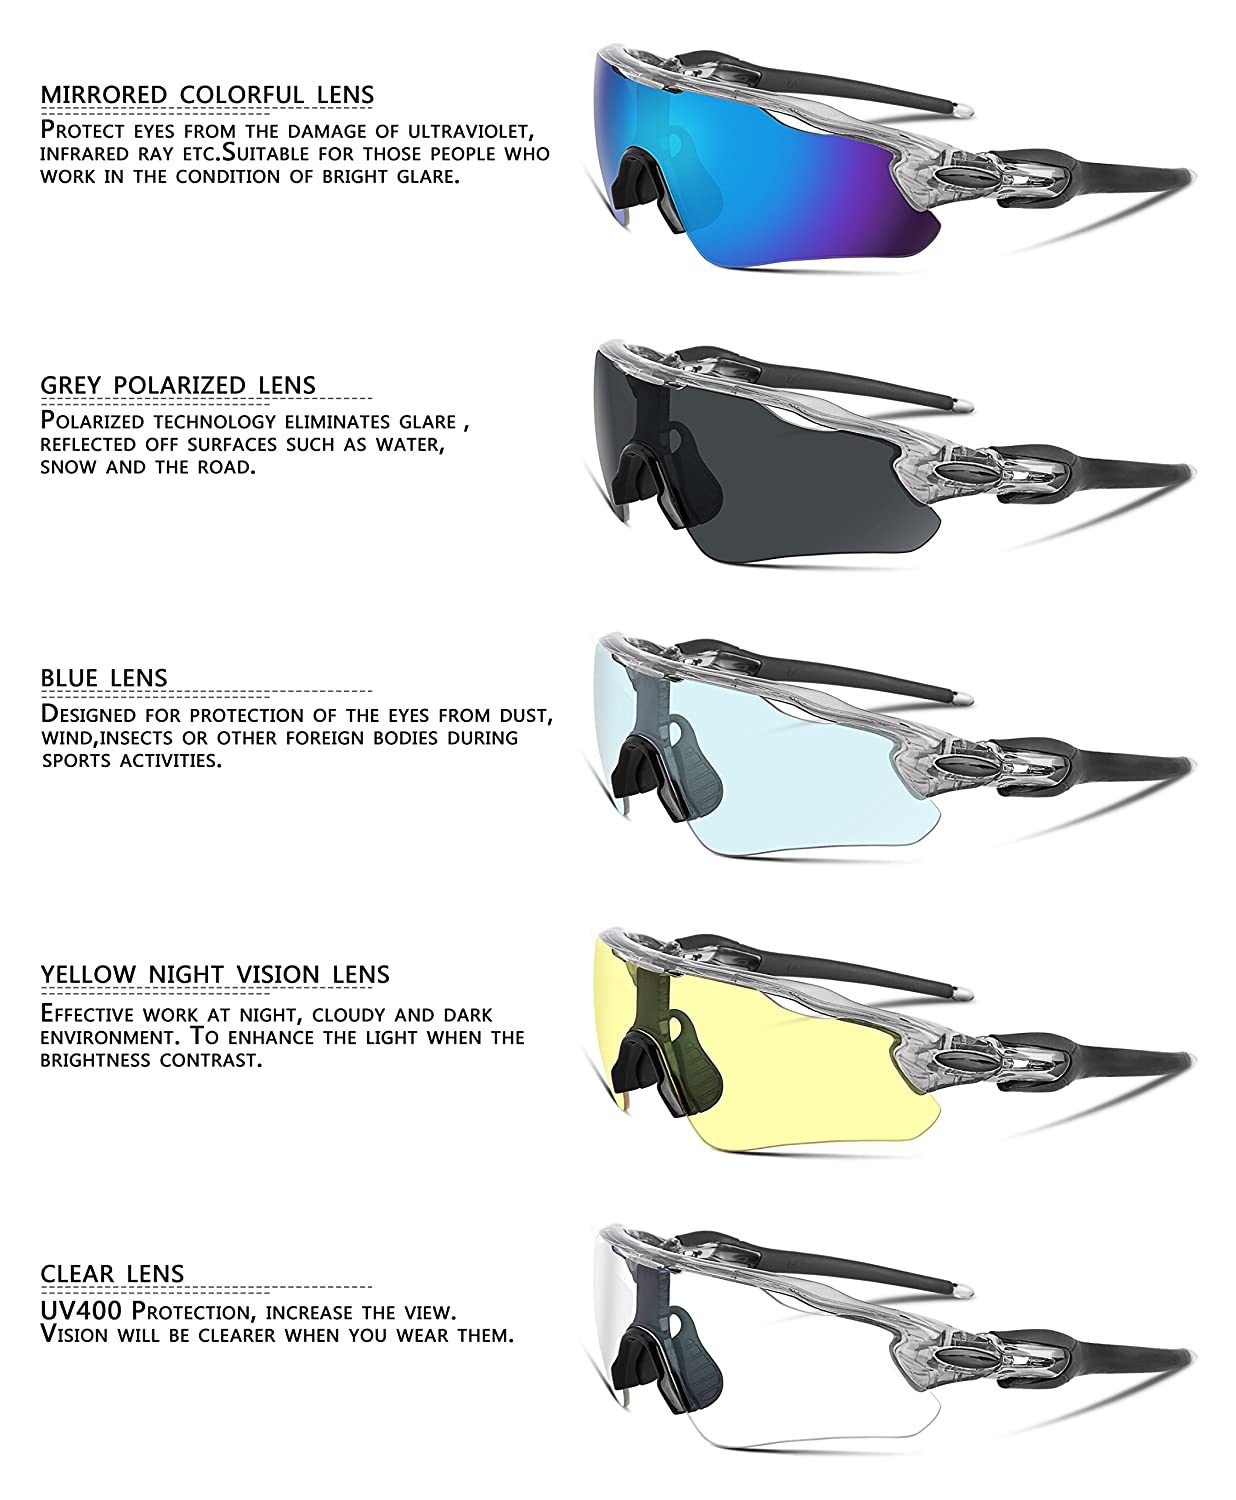 51d46d172c FEISEDY Polarized Sports Sunglasses REVO Changeable Lenses TR90 Frame  Cycling B2280  Amazon.com.au  Sports